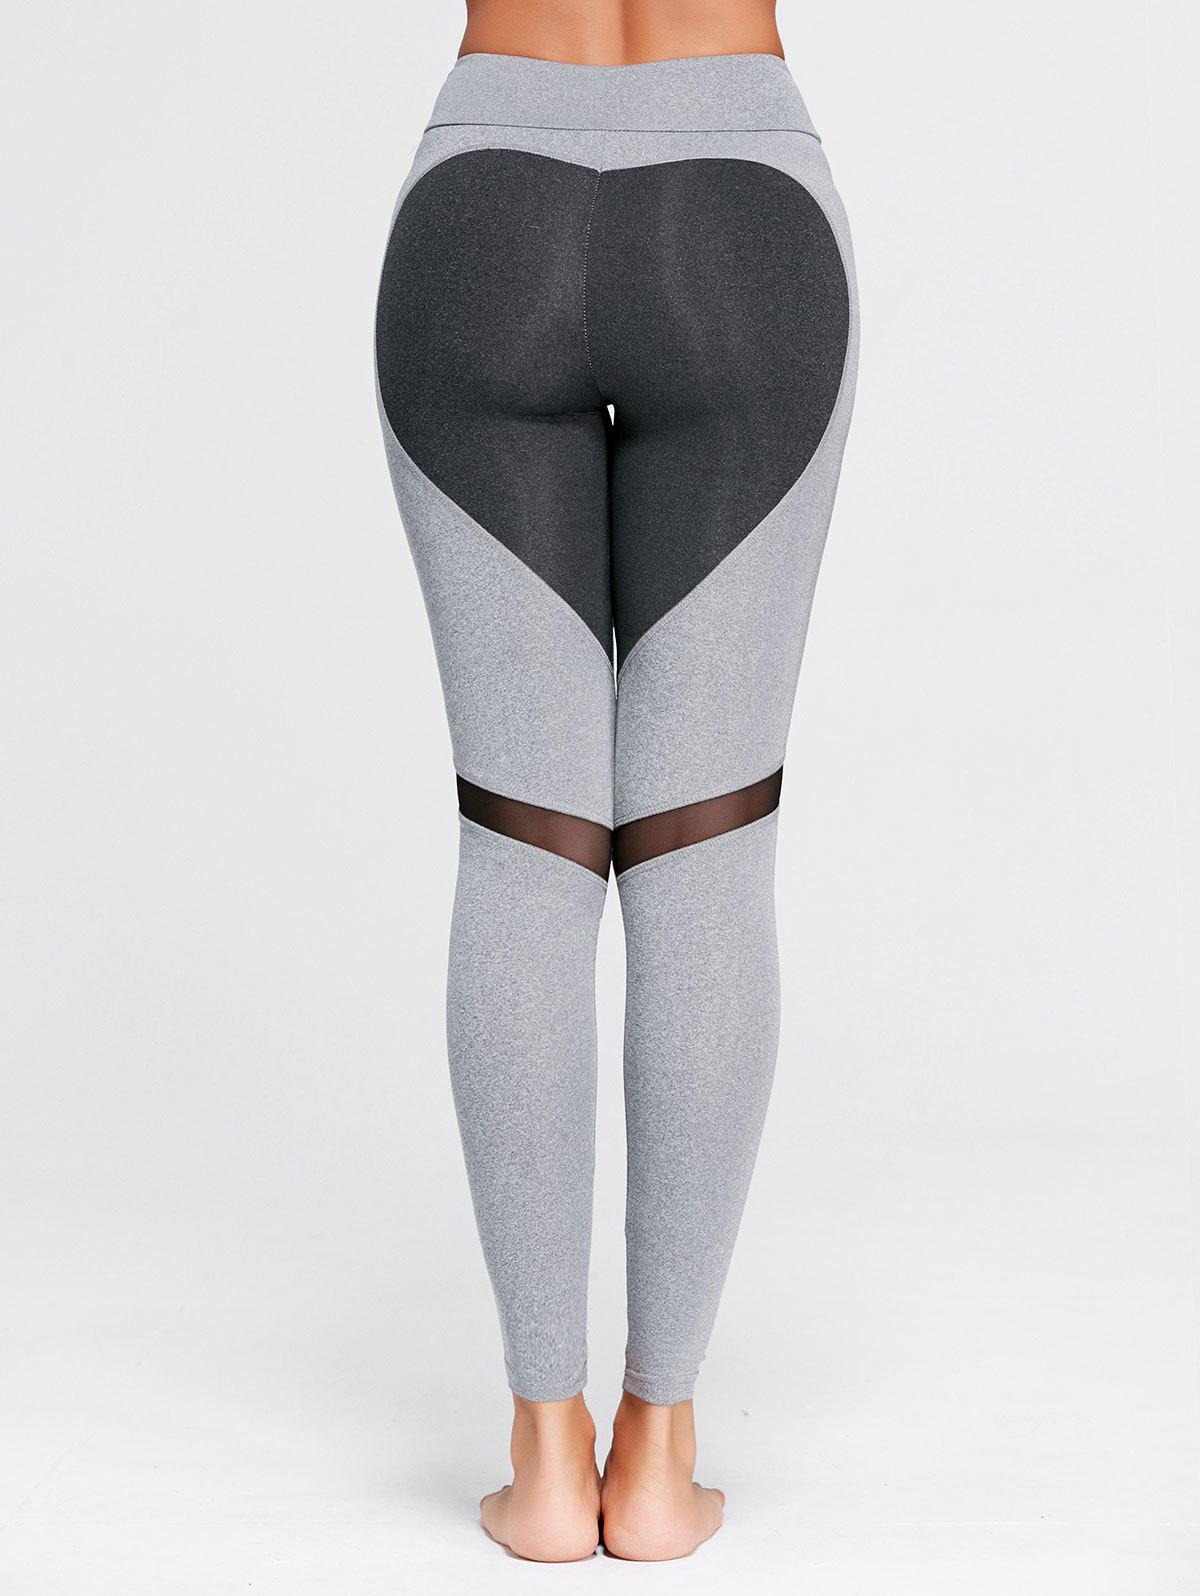 Heart Pattern Mesh Panel Workout LeggingsWOMEN<br><br>Size: M; Color: GRAY; Style: Active; Length: Ninth; Material: Polyester,Spandex; Fit Type: Skinny; Waist Type: High; Closure Type: Elastic Waist; Pattern Type: Heart; Pant Style: Pencil Pants; Weight: 0.2200kg; Package Contents: 1 x Leggings;